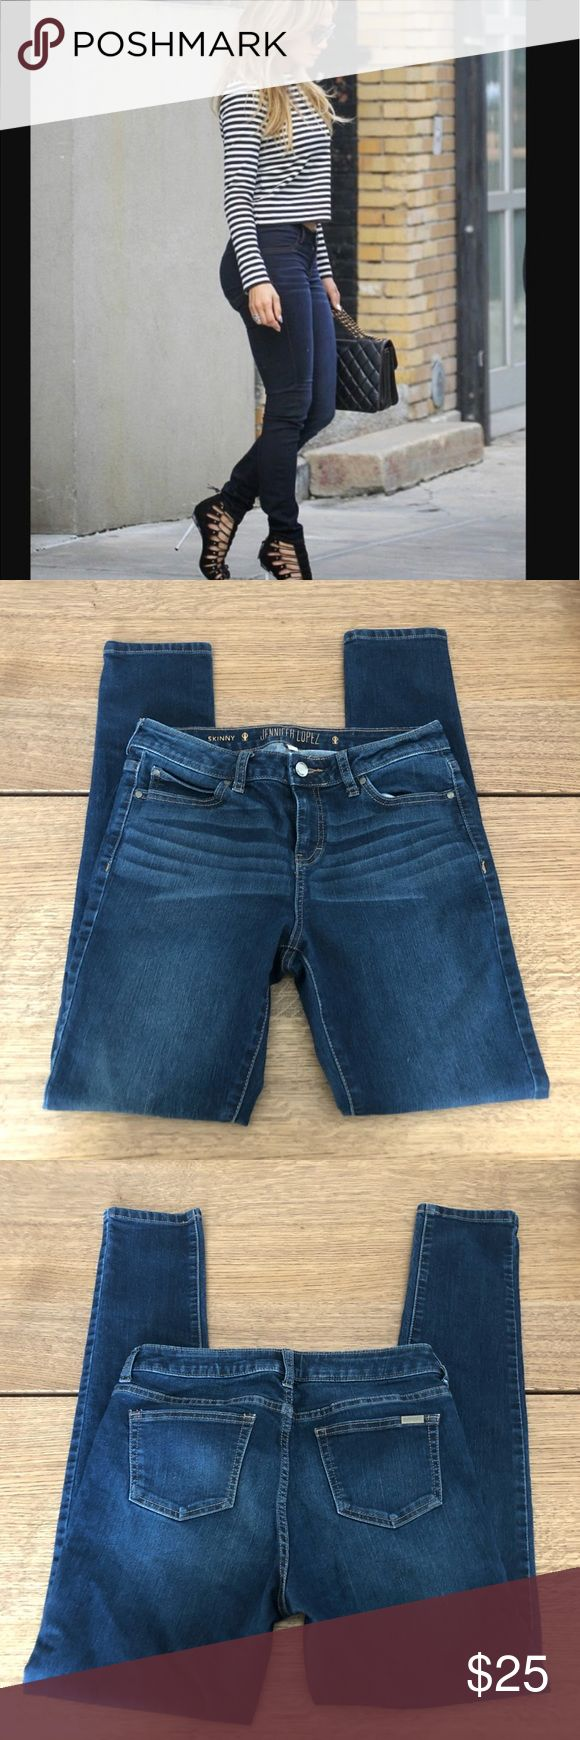 Jennifer Lopez skinny jeans Soft and stretchy denim, size 6, in excellent condition!  Inseam   Rise   Waist   Leg opening   Bin13 Jennifer Lopez Jeans Skinny